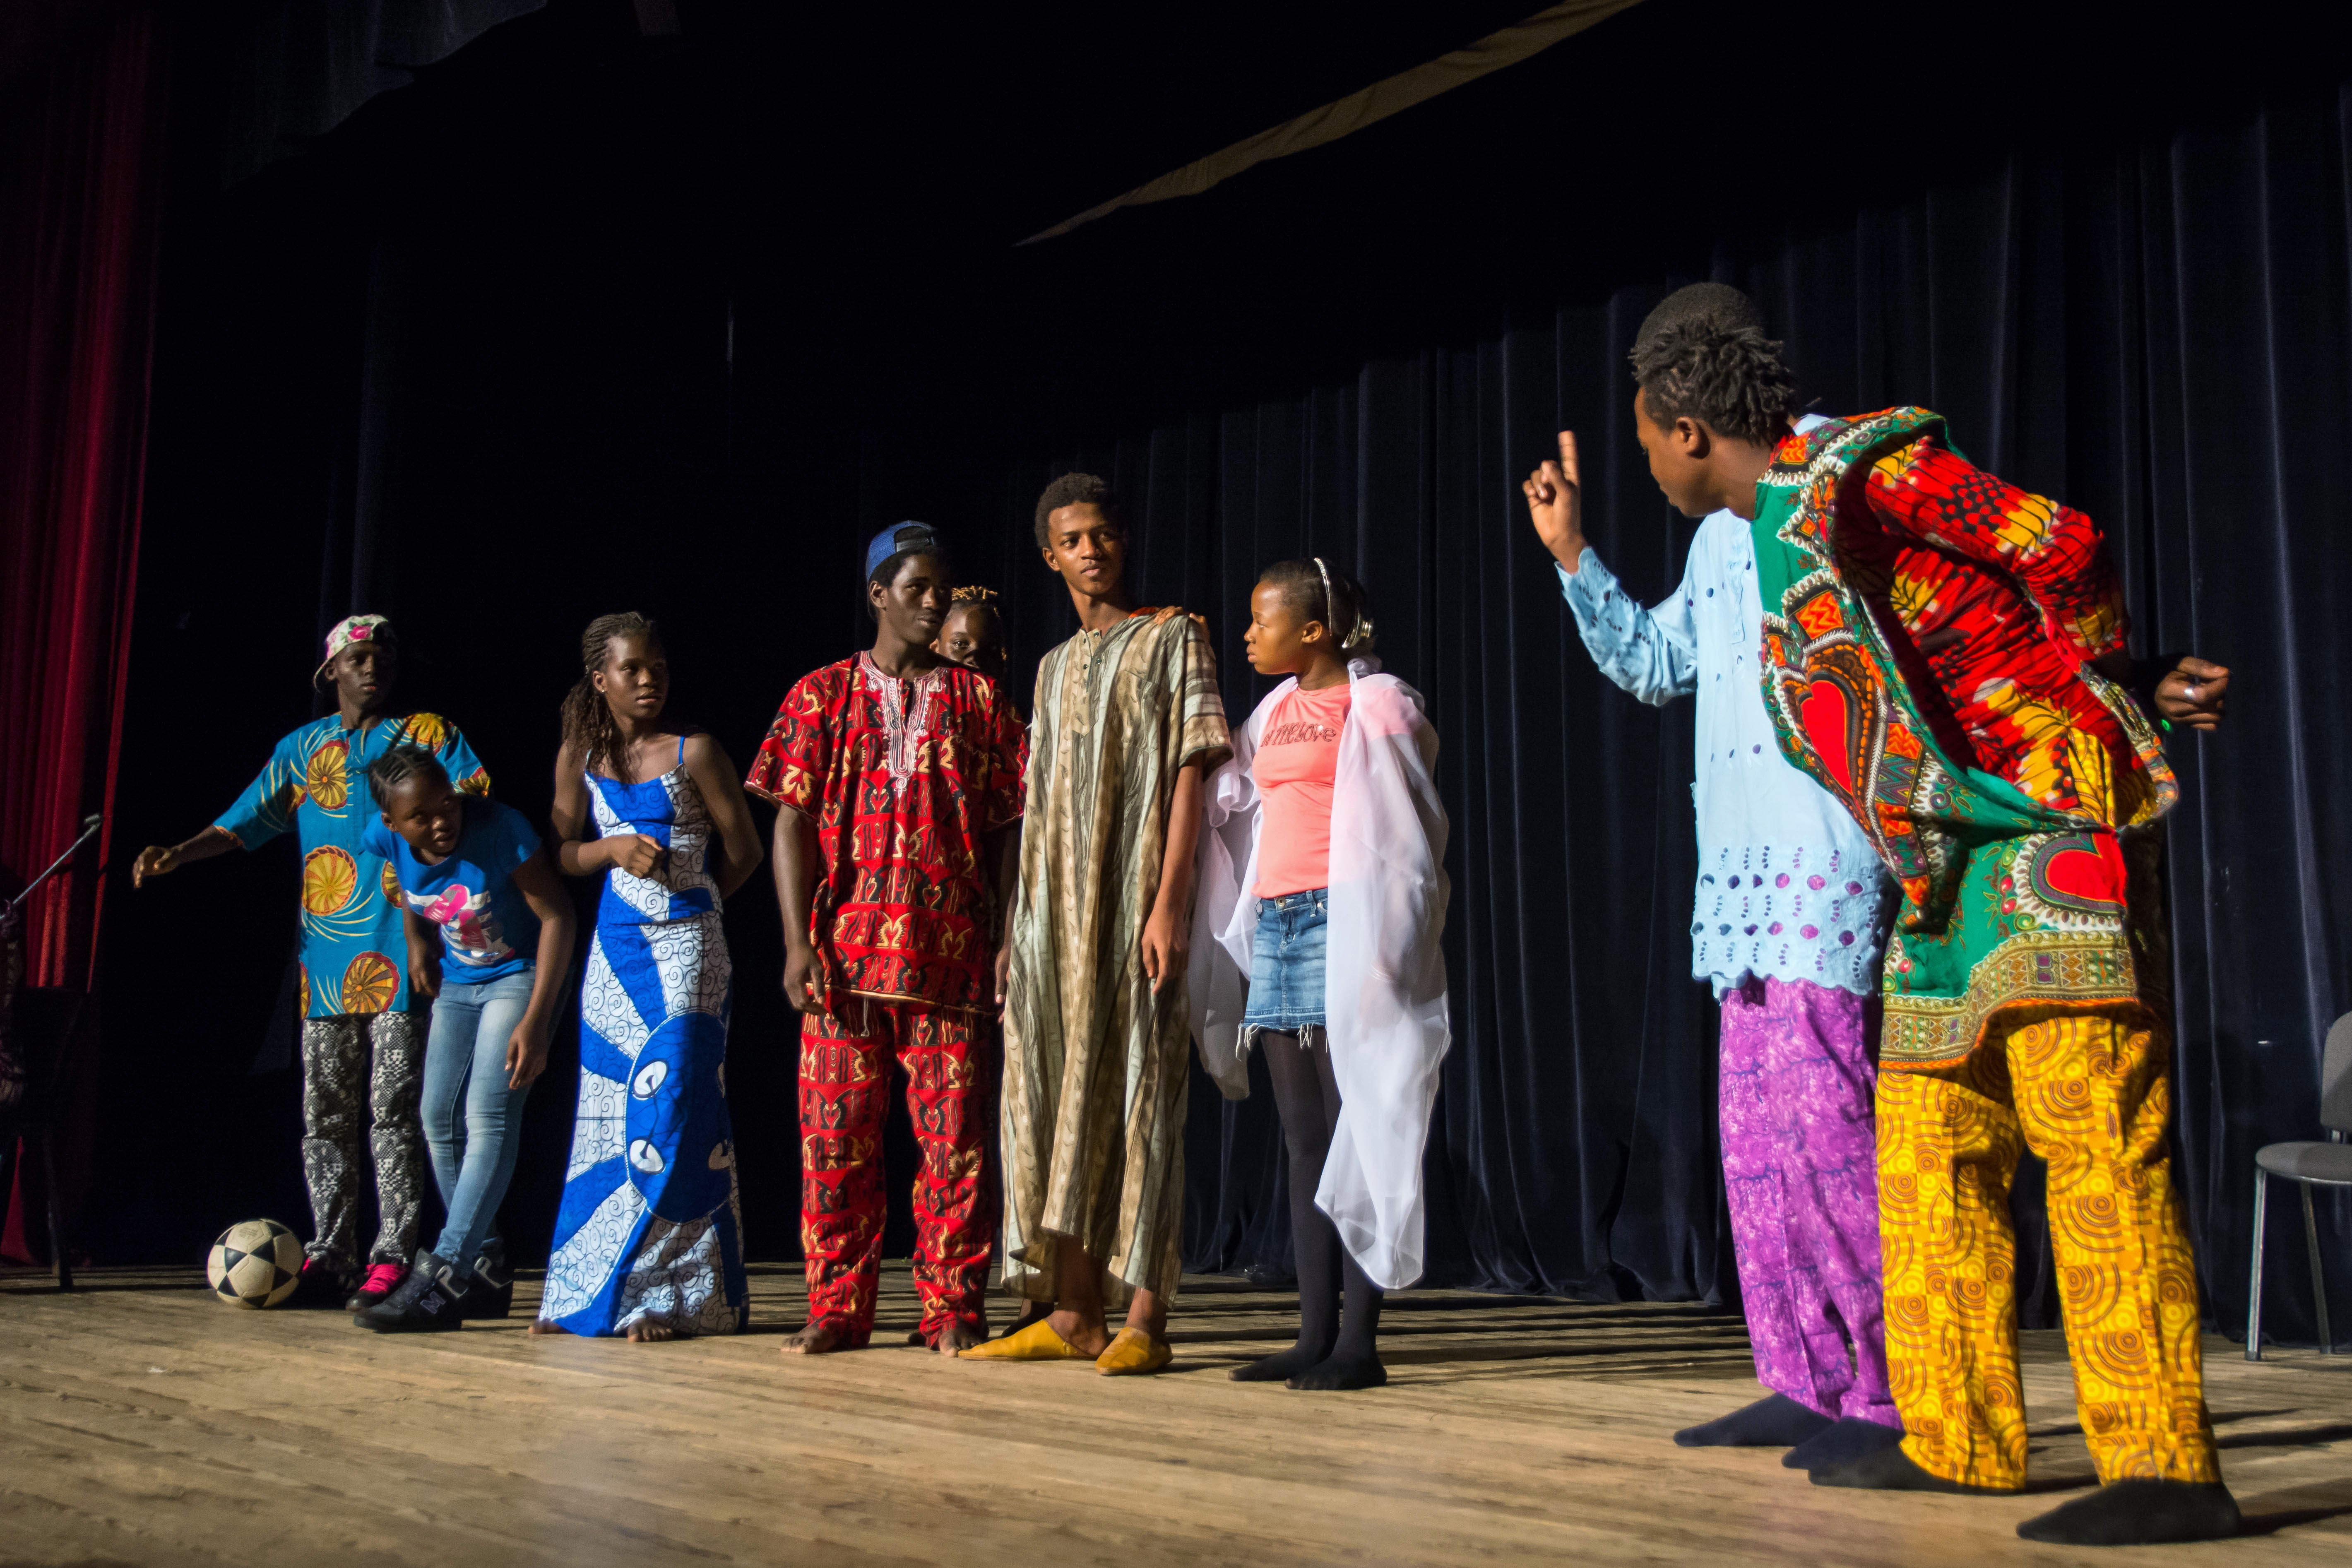 Young migrants from Senegal, The Ivory Coast, and The Democratic Republic of the Congo perform a play at the Migrant en Scene festival in Rabat on November 18, 2015. The play, written by Moroccan school students, told the story of a group of villagers that reject a man because of the color of his skin. Photo by Hannah Steinkopf-Frank.